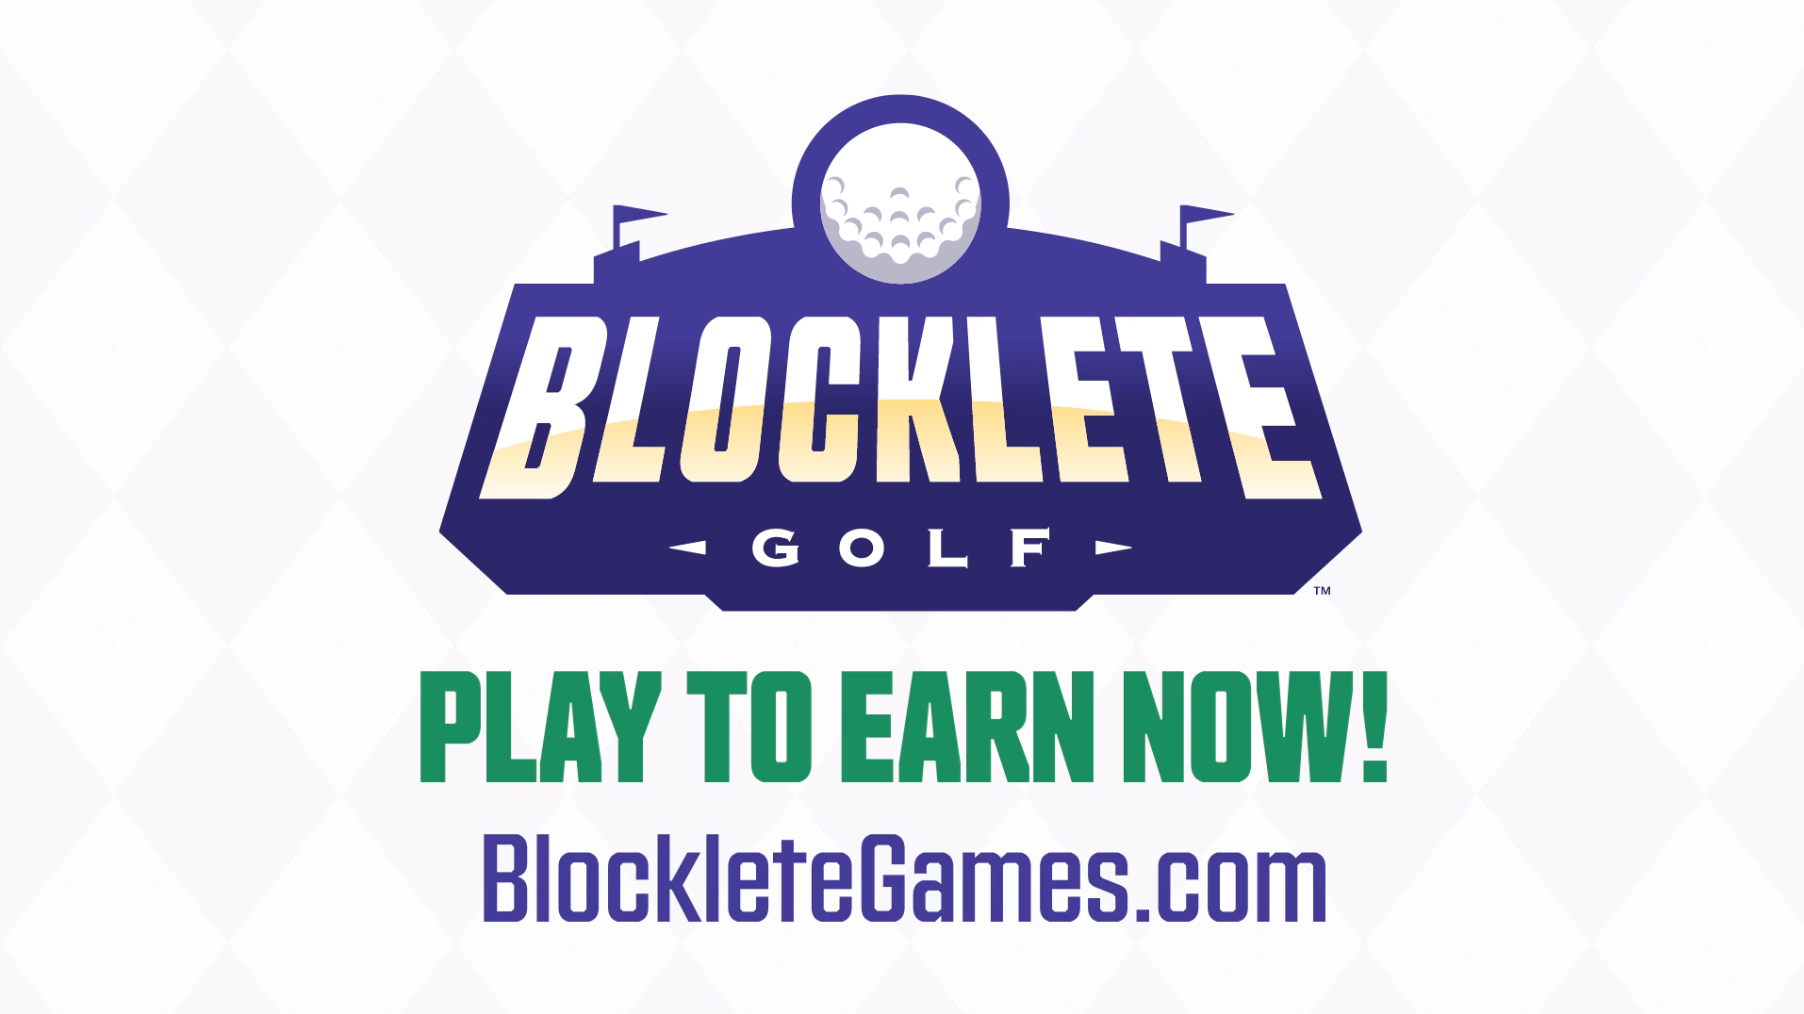 Blocklete Games - Play to Earn!